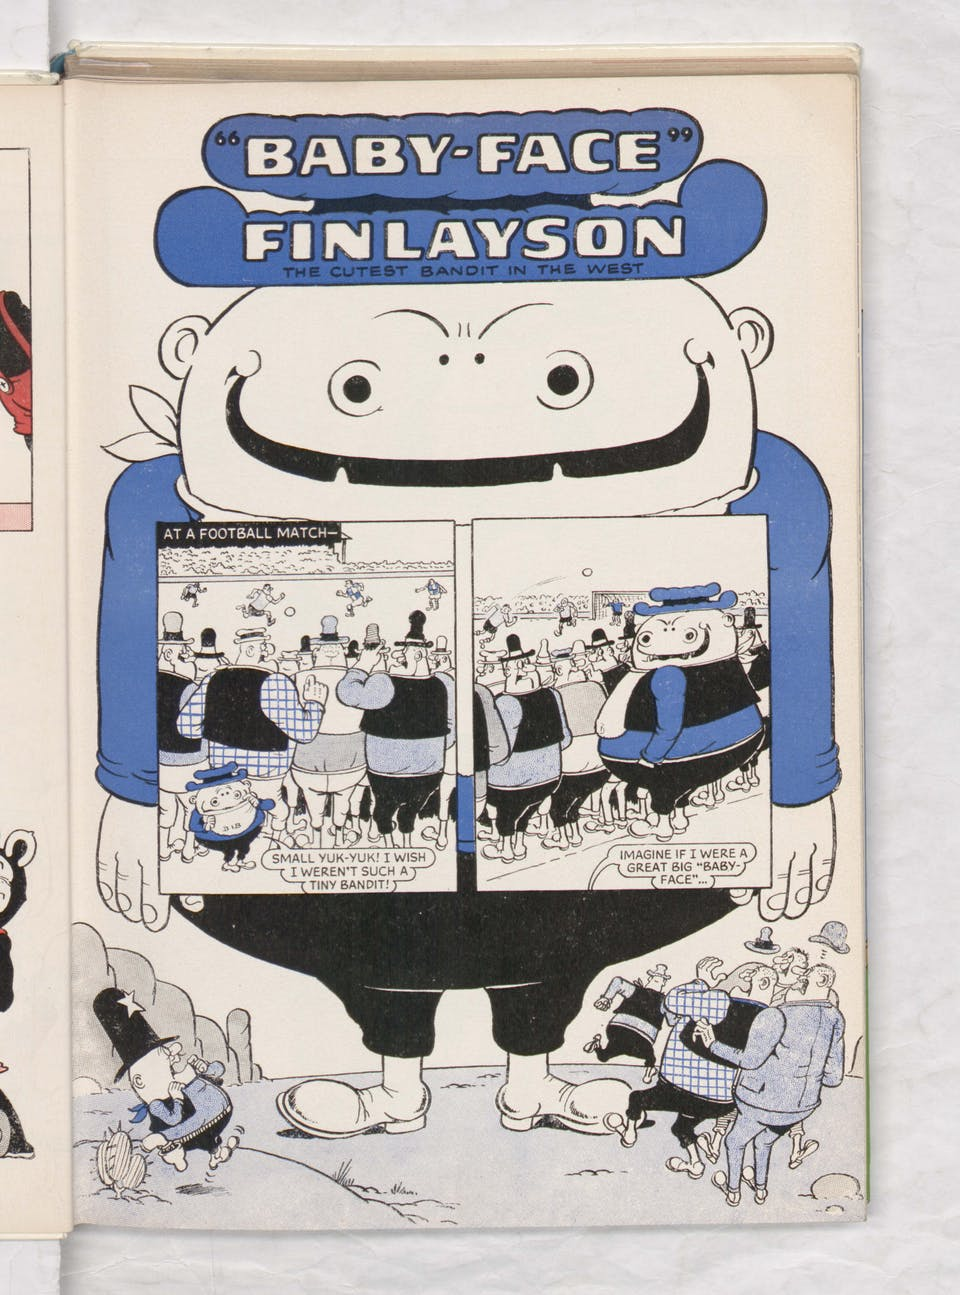 Beano Book 1974 Annual - Baby Face Finlayson at the footie